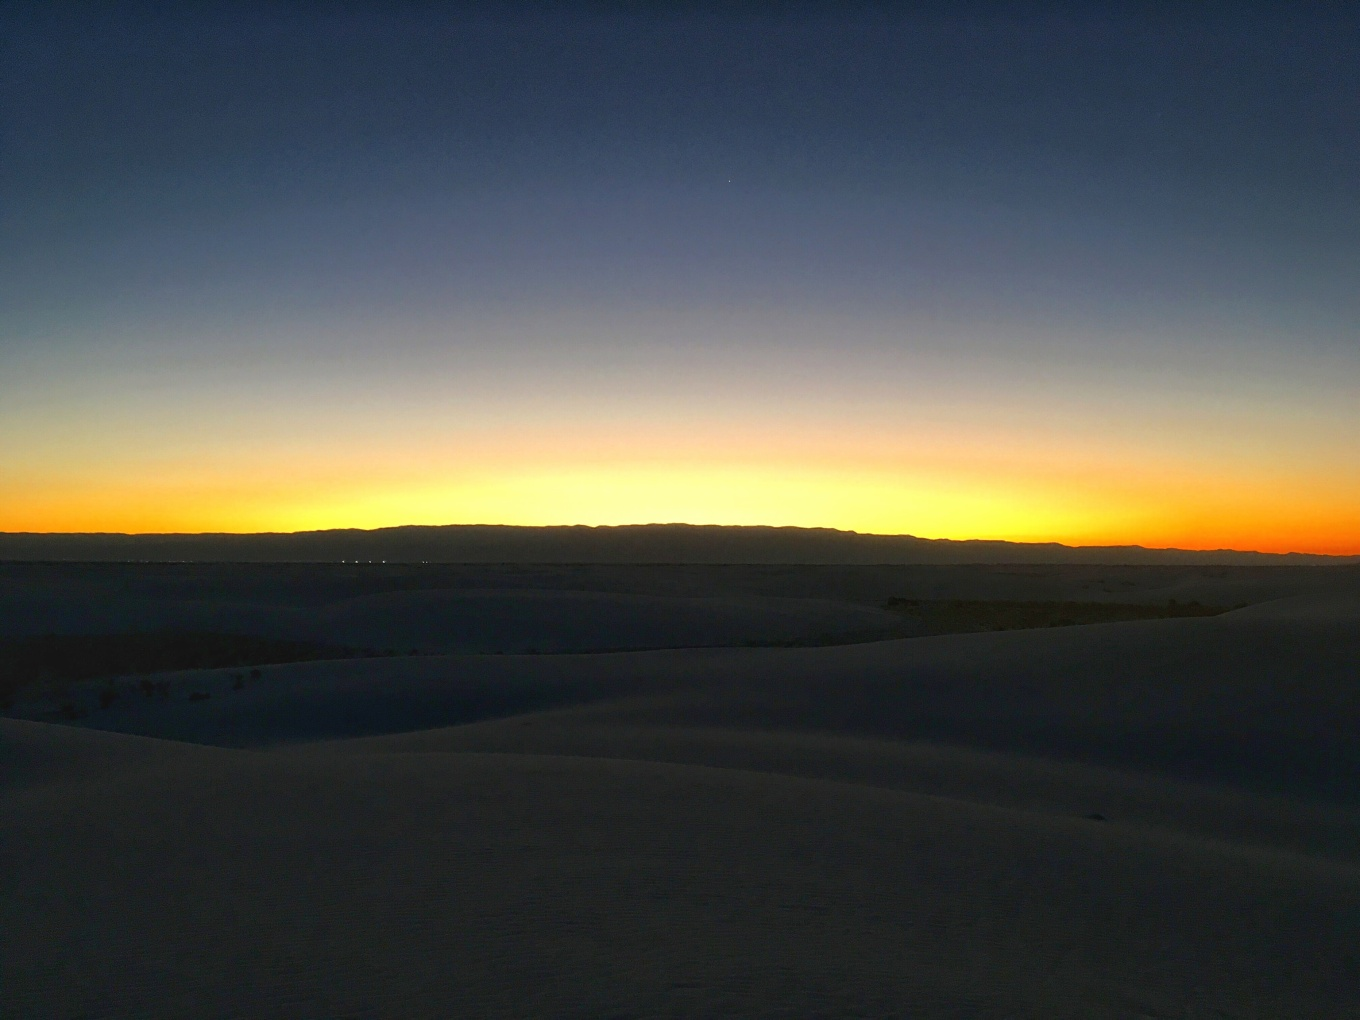 Daybreak at White Sands National Monument